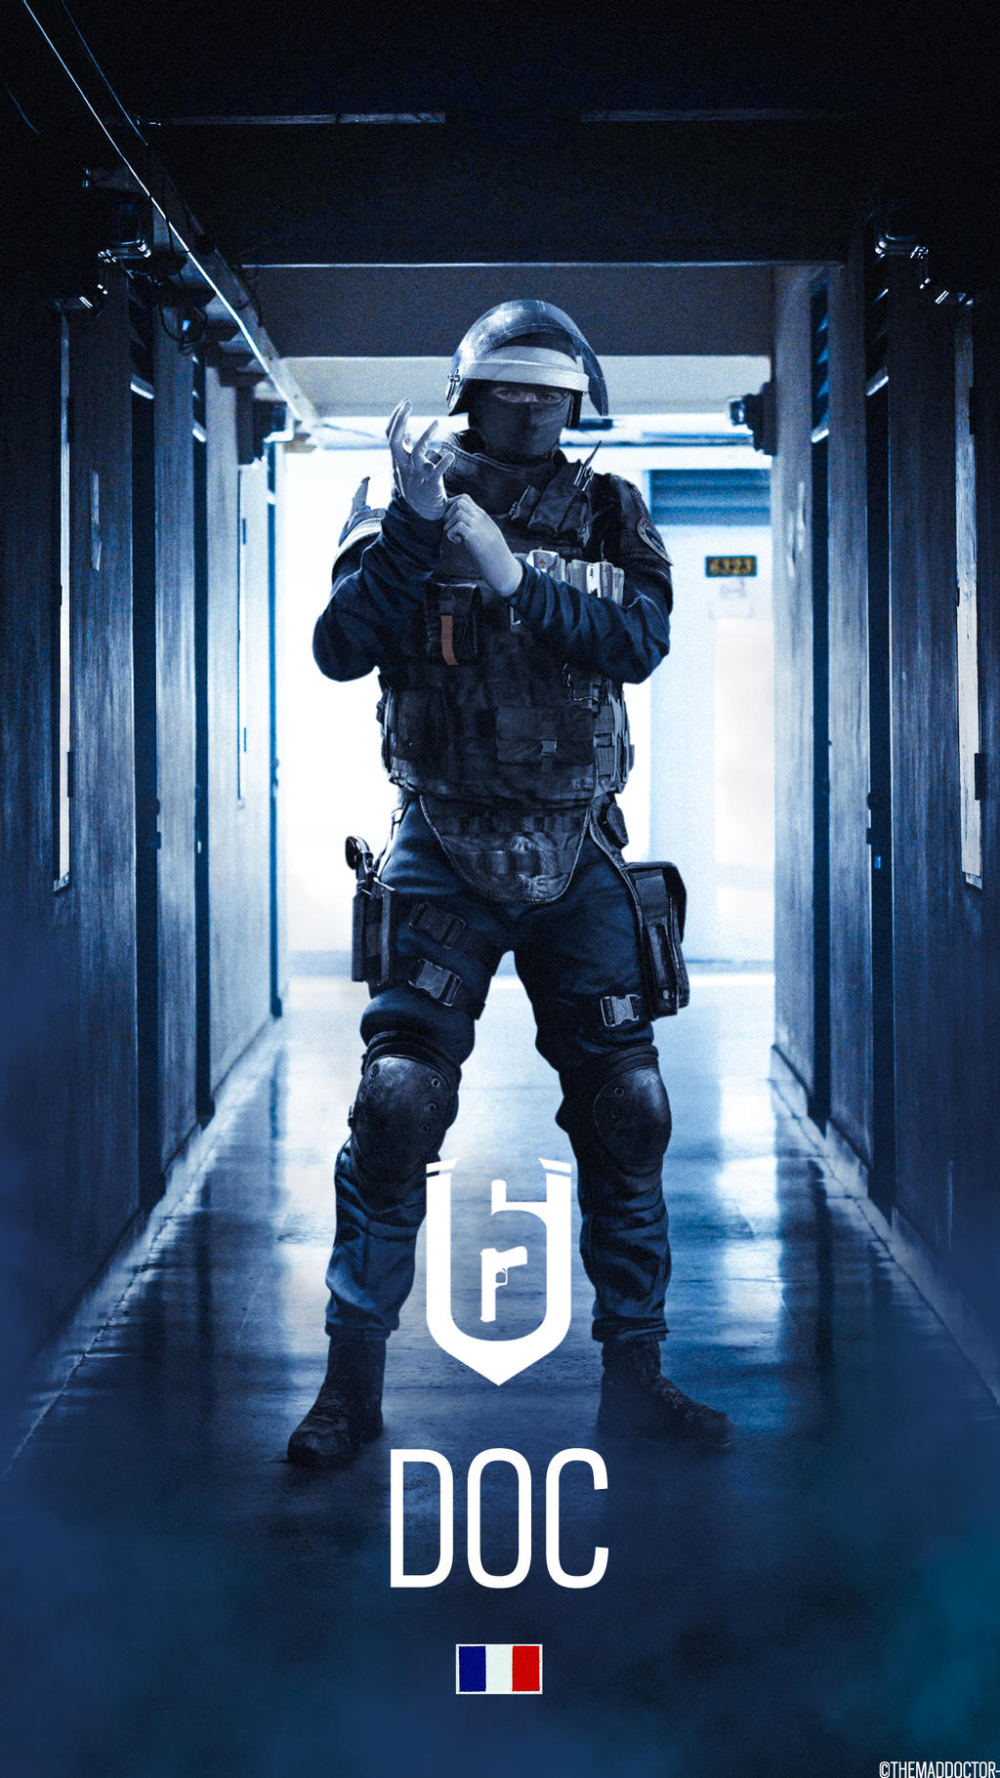 Doc S Mobile Wallpaper Rainbow Six Siege By Alessandroberzuini On Deviantart In 2021 Cool Wallpapers Rainbow Rainbow Six Siege Art Rainbow 6 Siege Operators